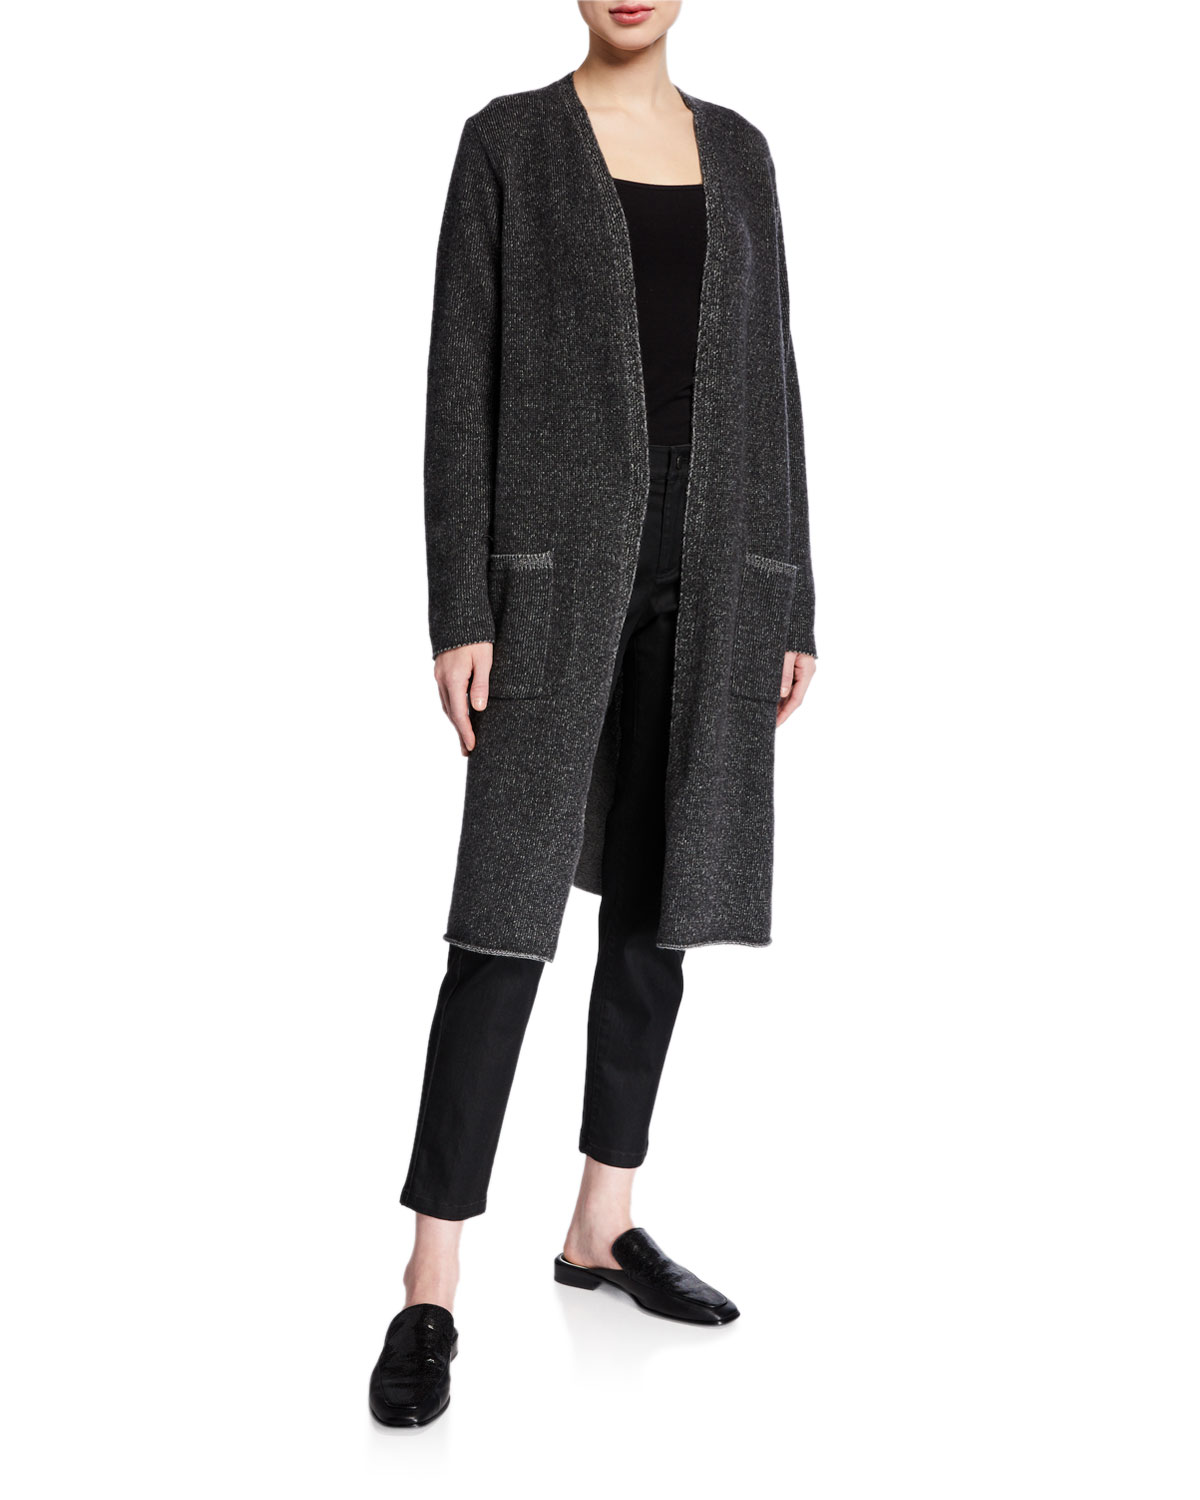 Eileen Fisher Tops PETITE LONG PLAITED LOFTY RECYCLED CASHMERE CARDIGAN